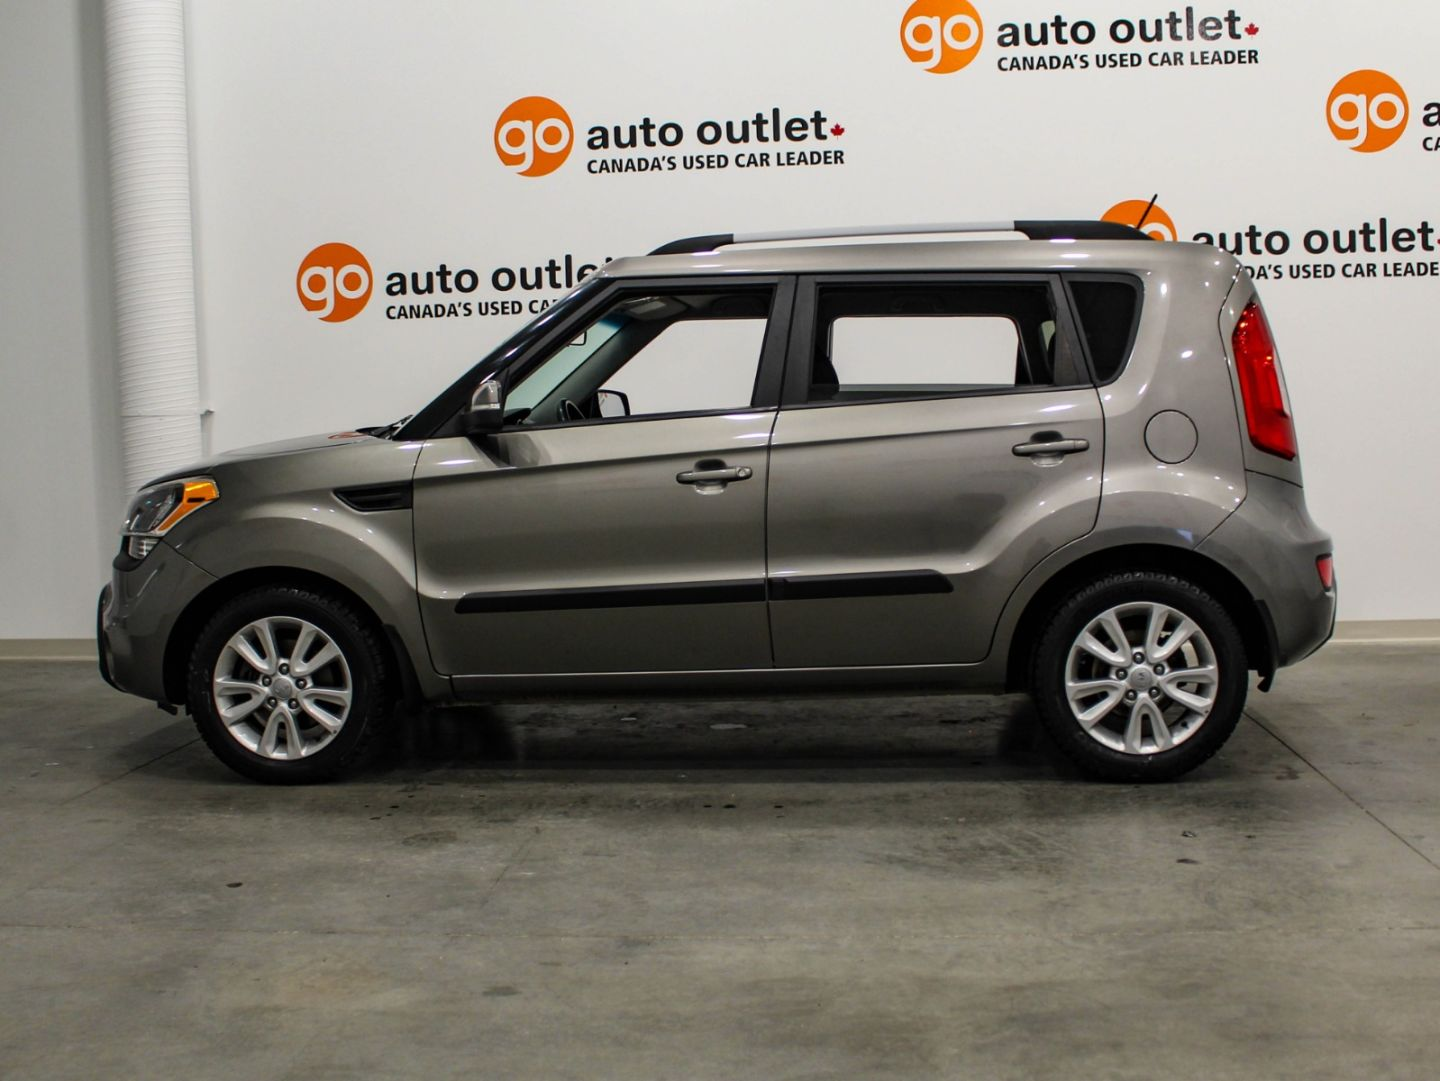 2012 Kia Soul 2u for sale in Edmonton, Alberta